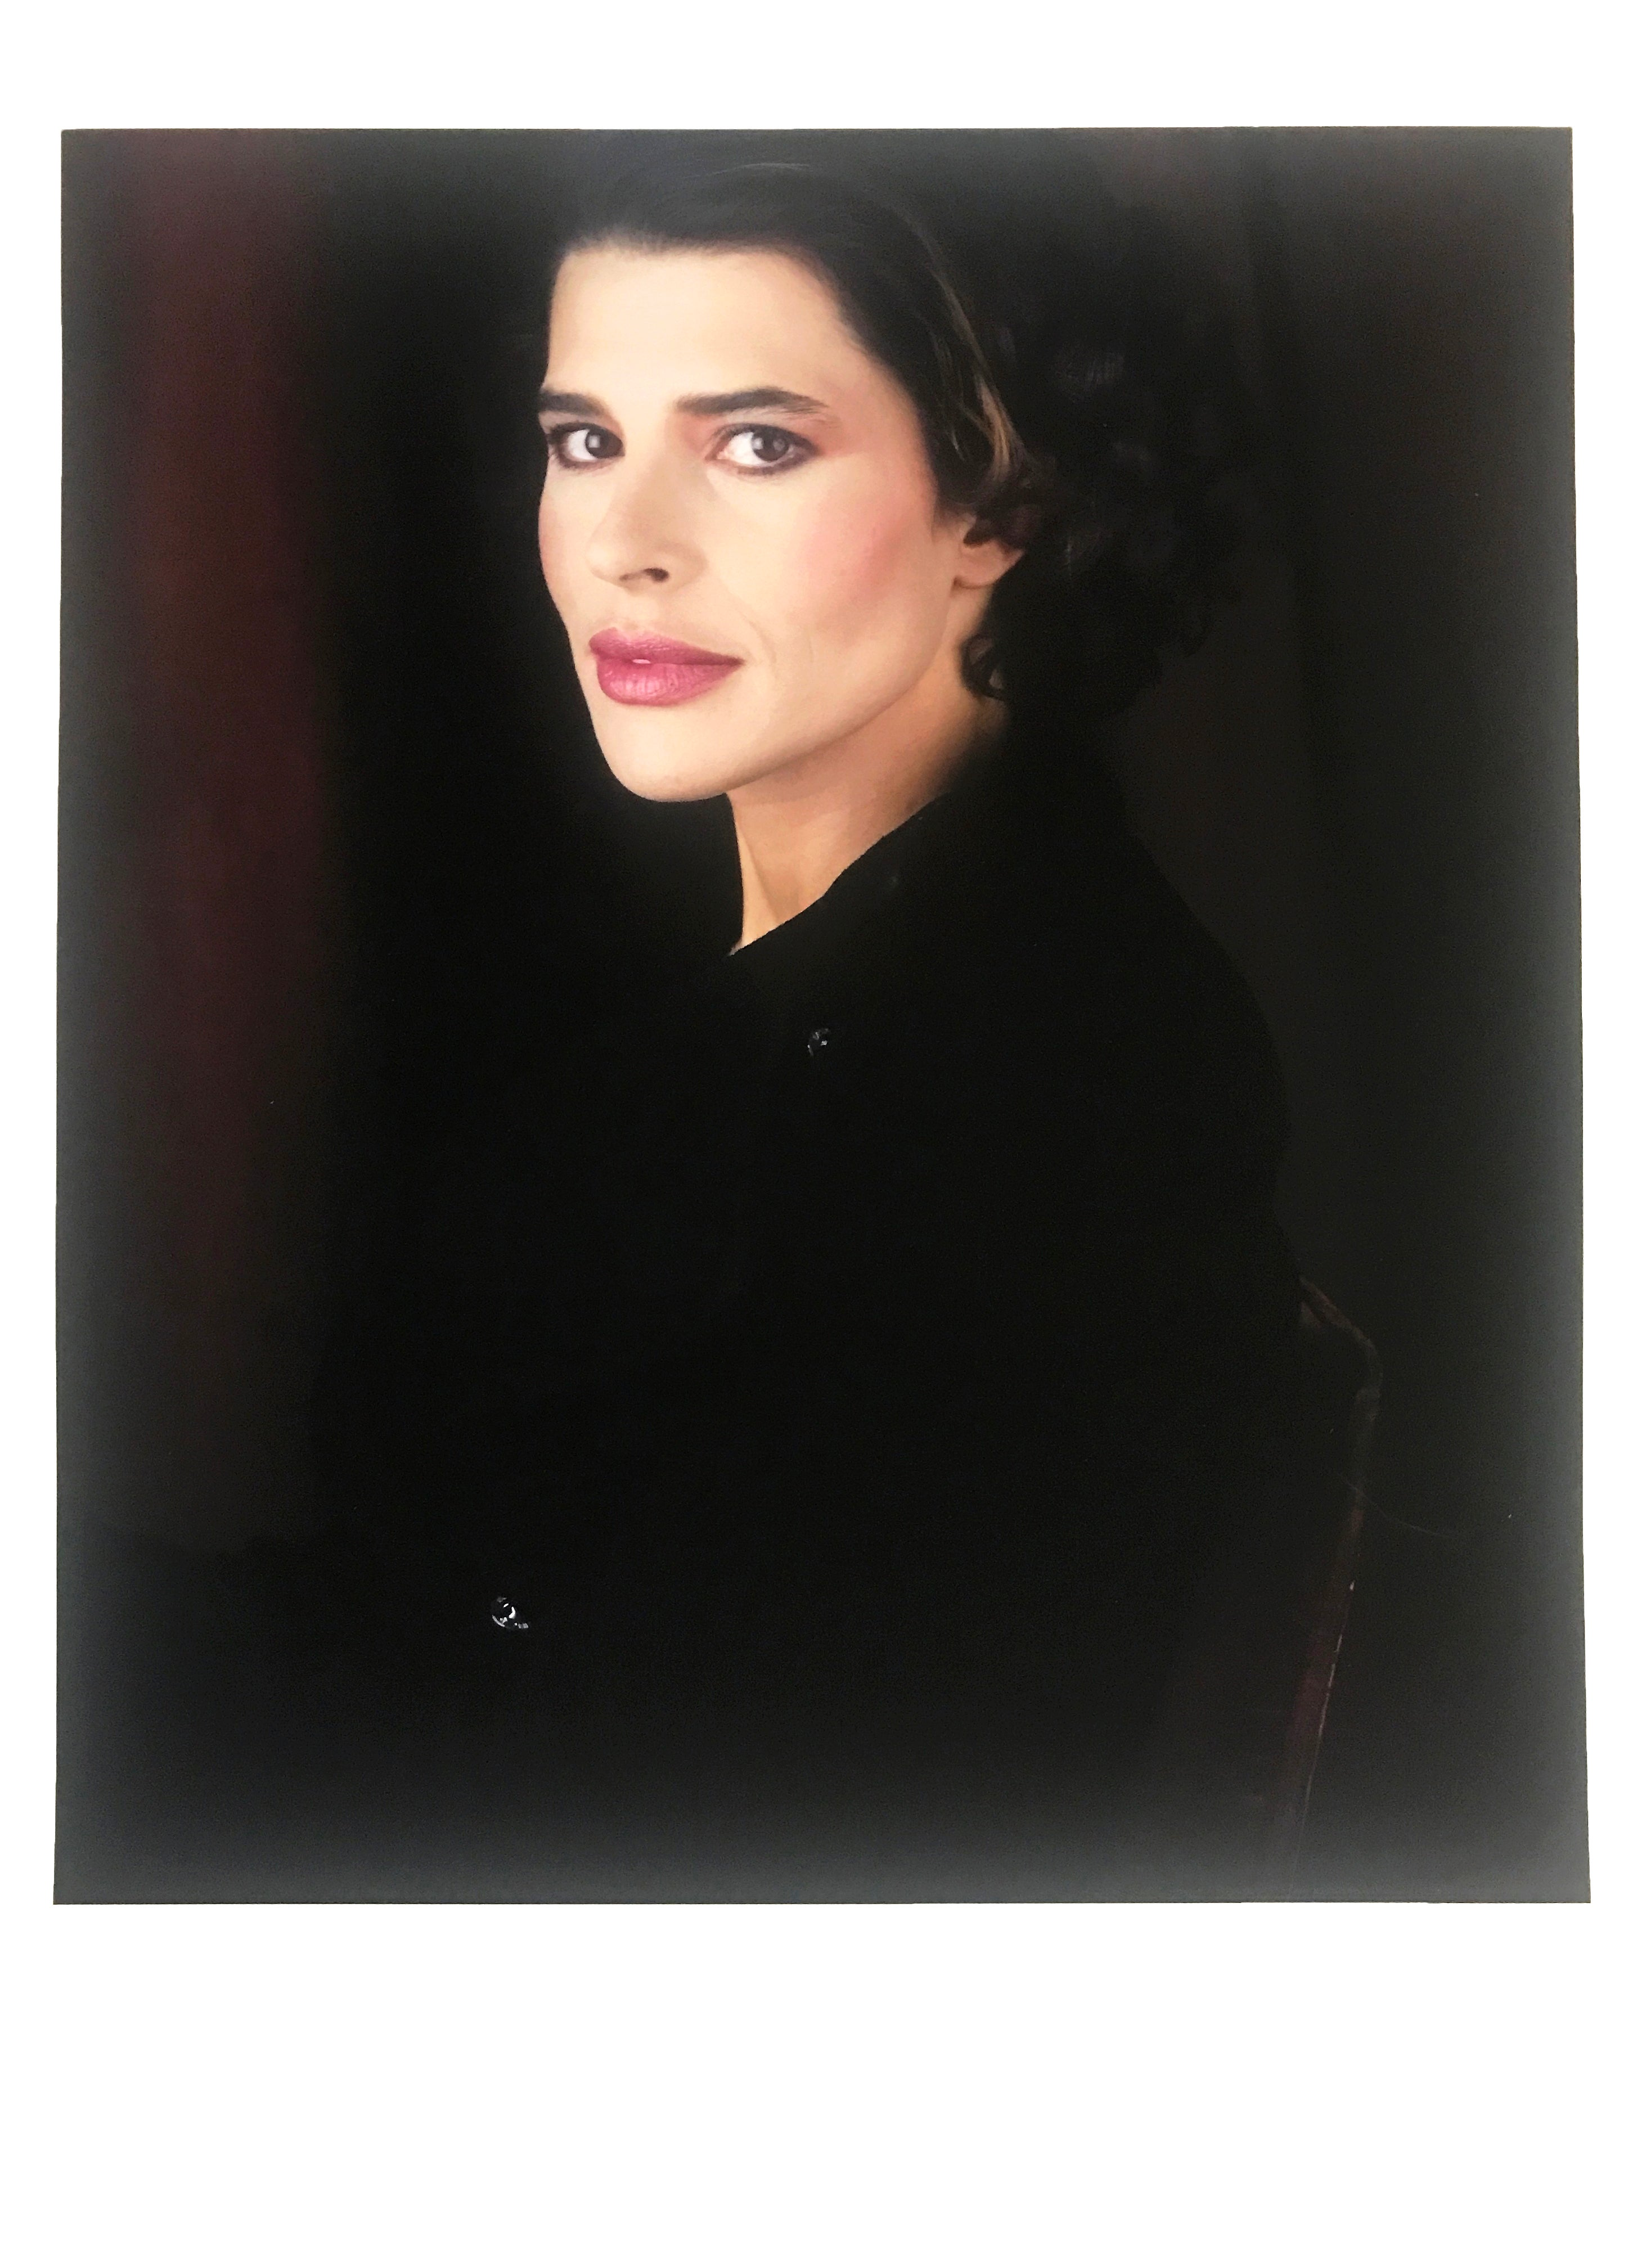 Fanny Ardant, Paris, France, Contemporary Portrait Photography of French Actress